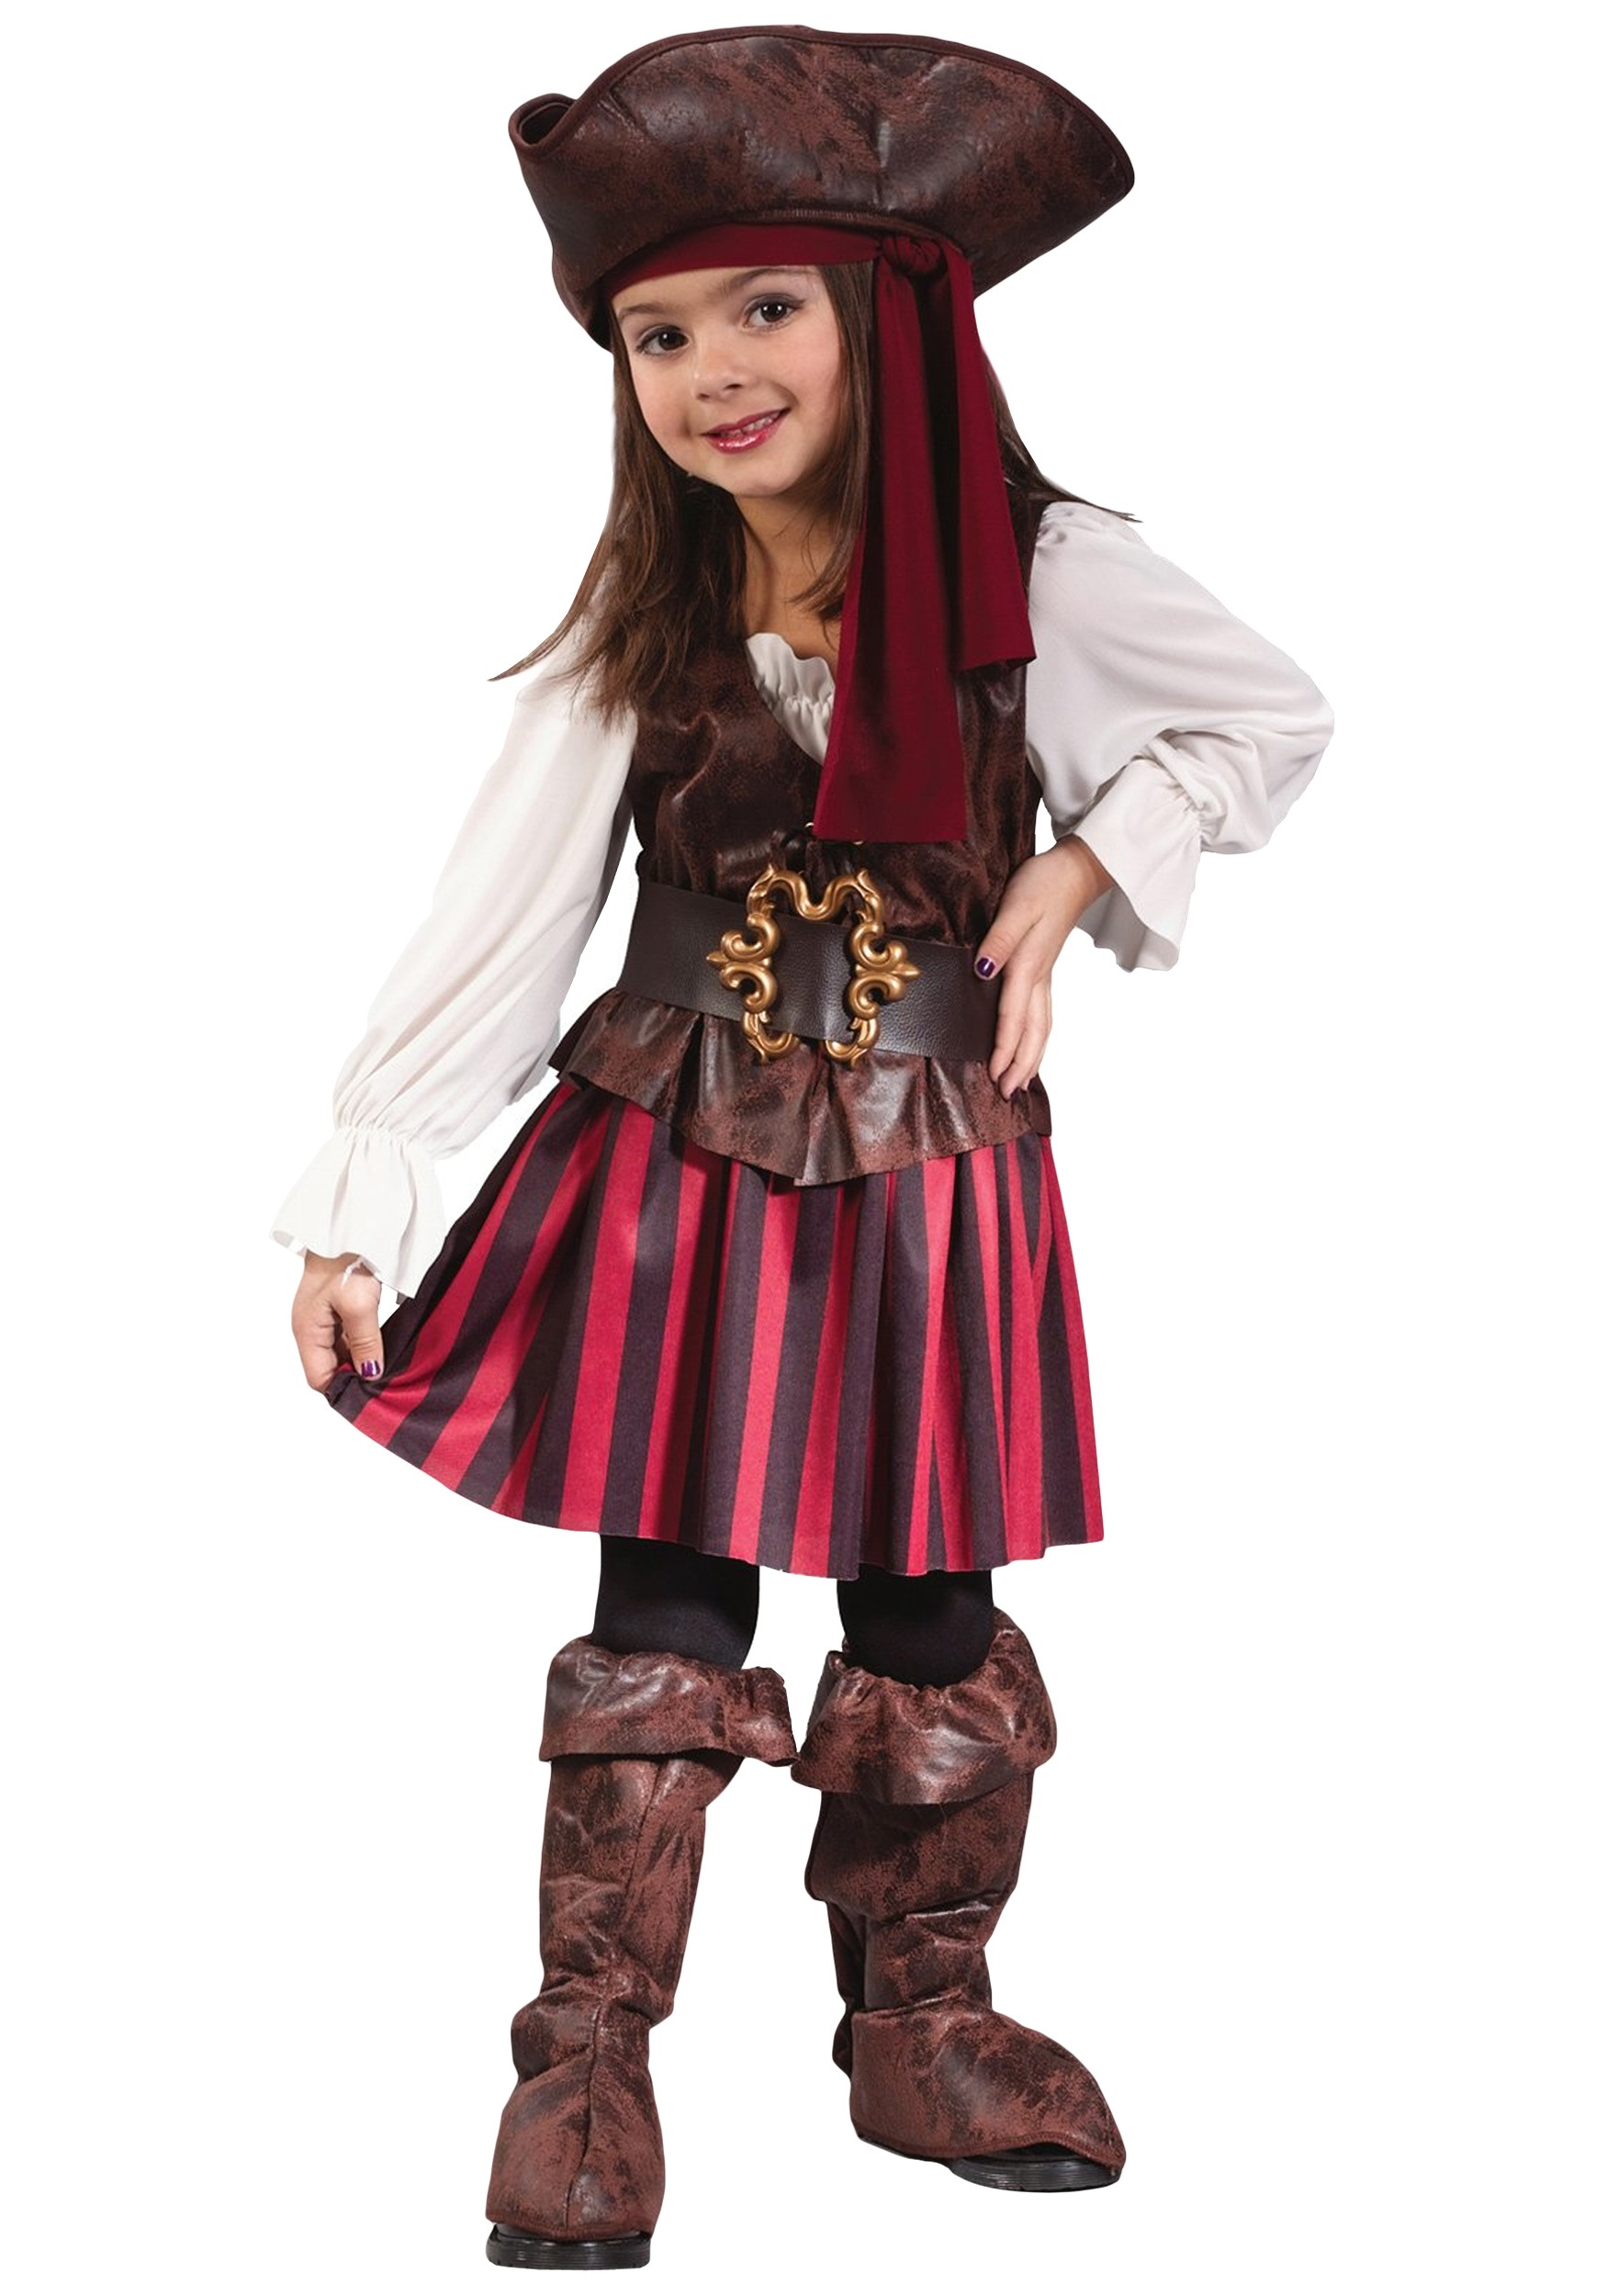 Shop for toddler girl pirate costume online at Target. Free shipping on purchases over $35 and save 5% every day with your Target REDcard.